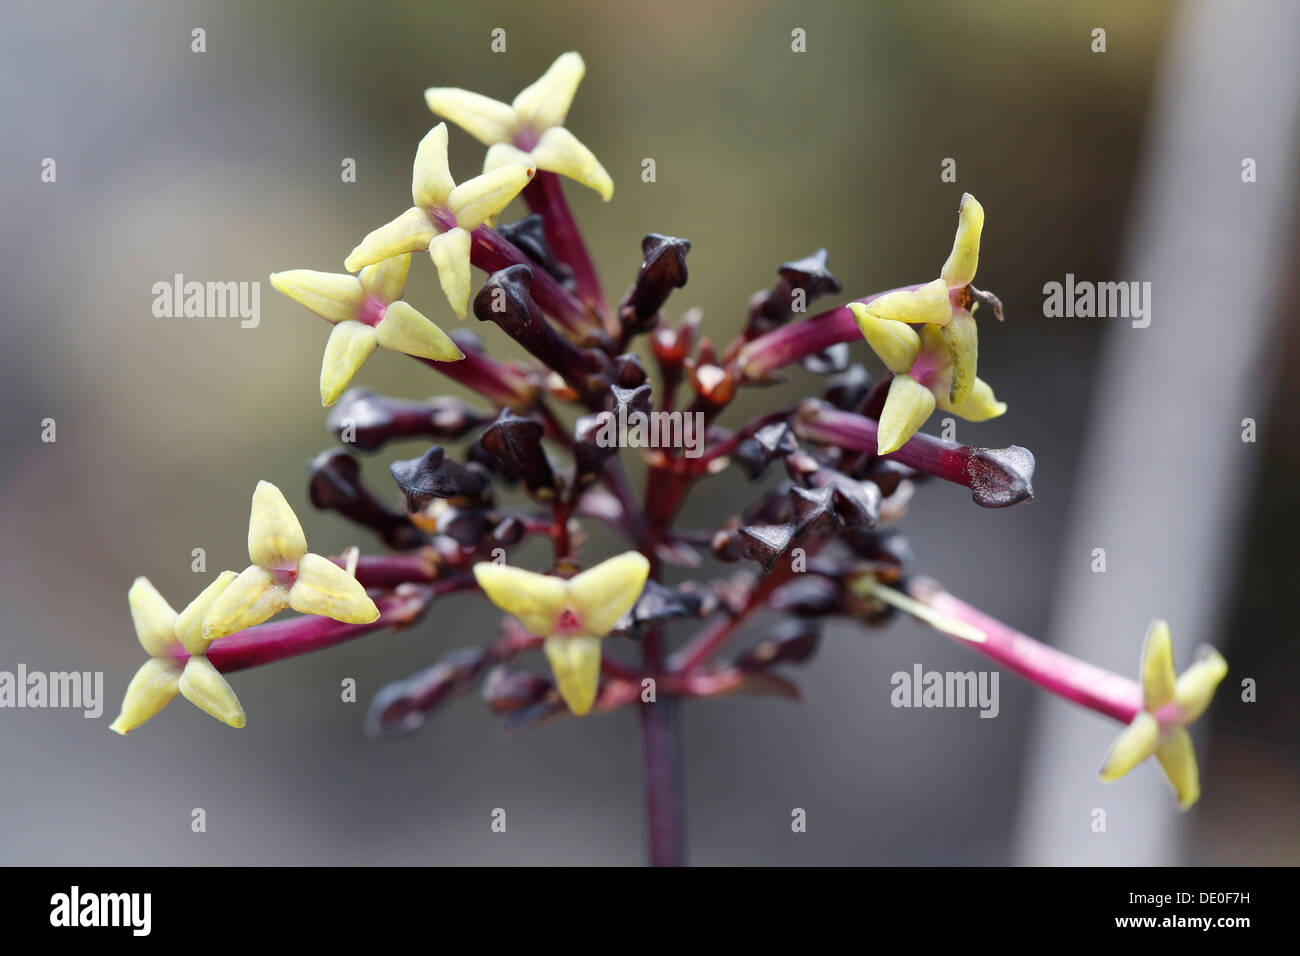 lava flower stockfotos lava flower bilder alamy. Black Bedroom Furniture Sets. Home Design Ideas